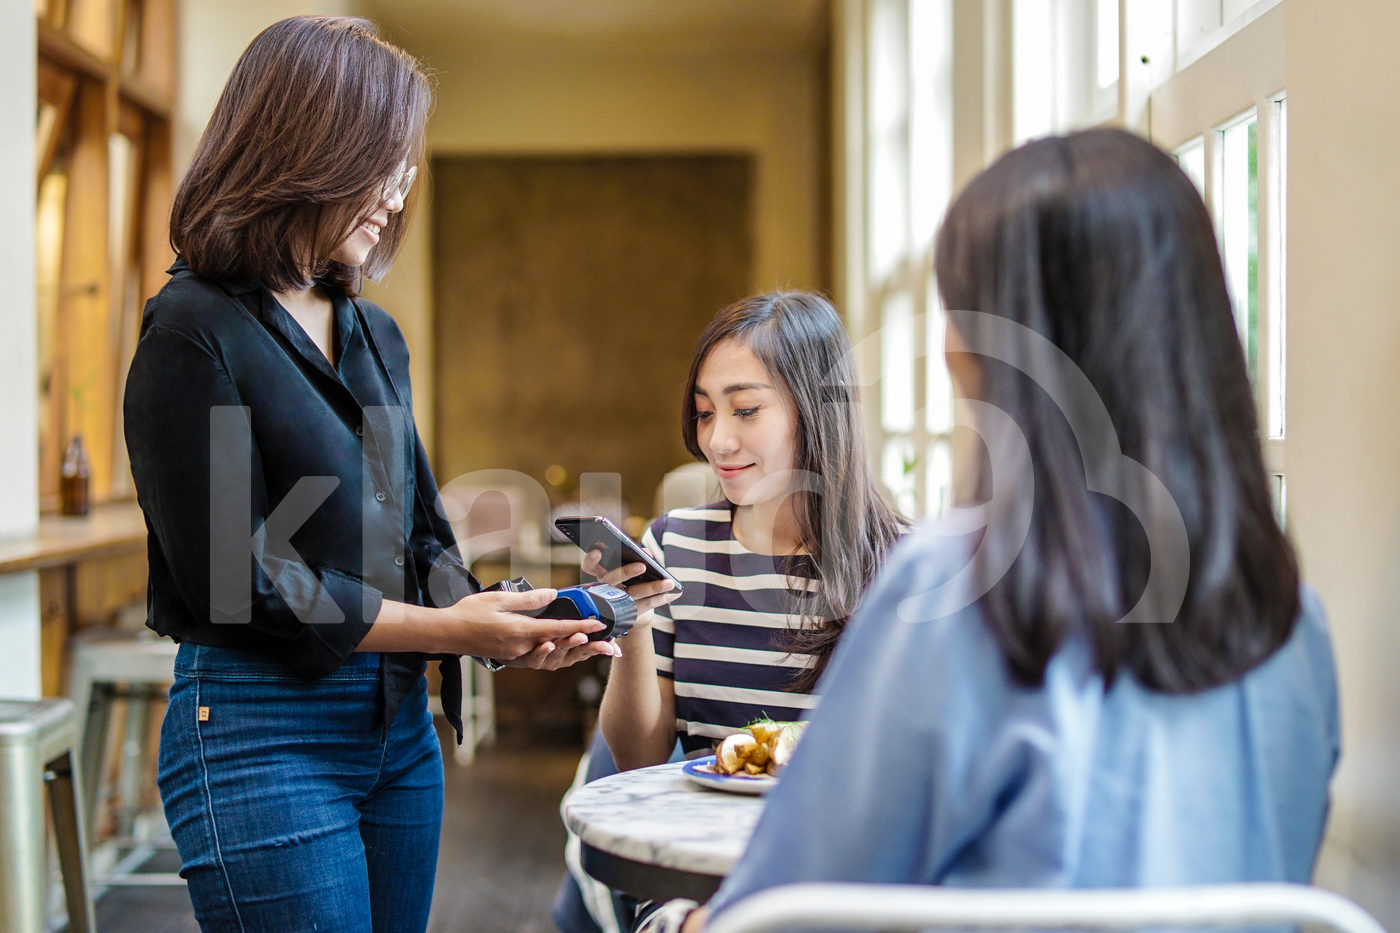 Young Asian woman making payment with mobile in a coffee shop